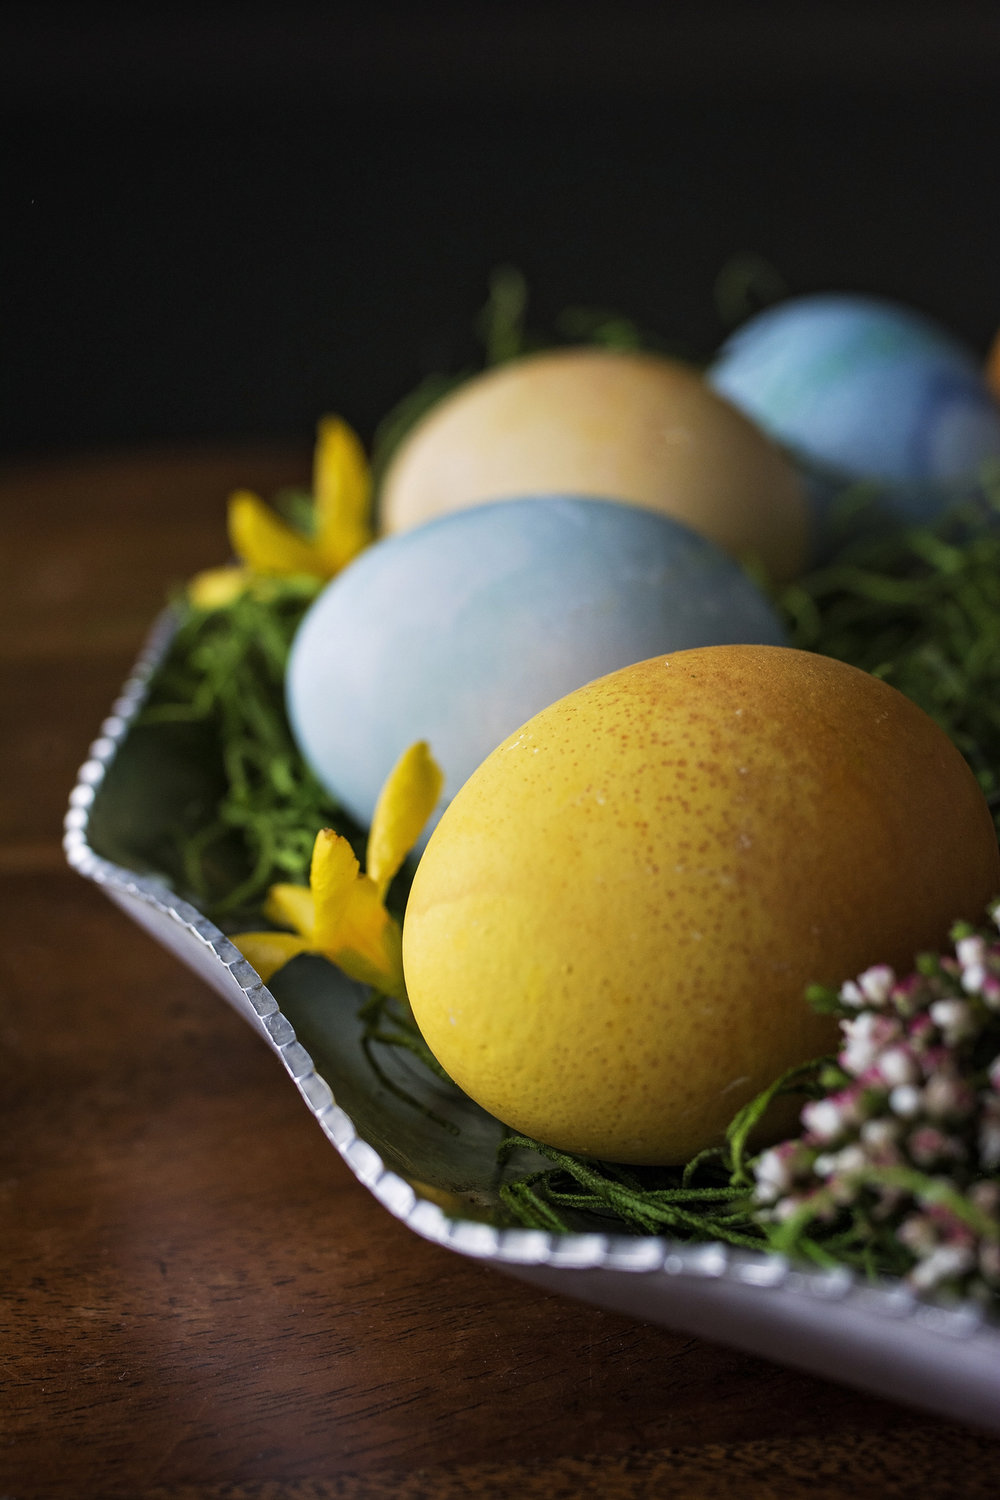 Kristine_eggs_Easter_flowers_spiritedtable_photo03.jpg